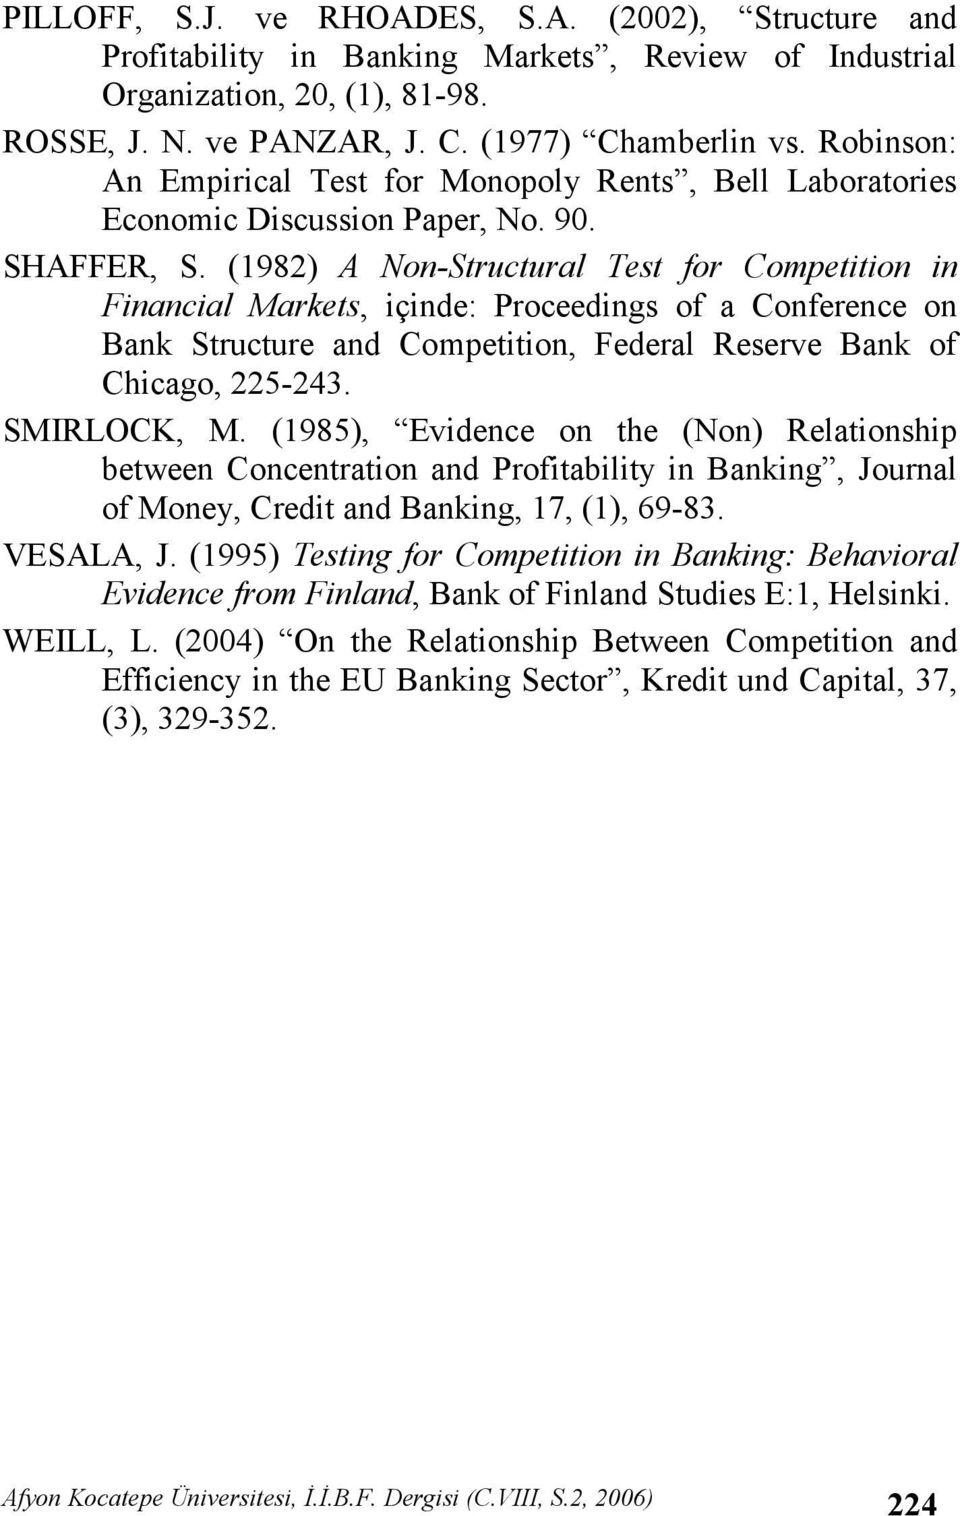 (1982) A Non-Structural Test for Competition in Financial Markets, içinde: Proceedings of a Conference on Bank Structure and Competition, Federal Reserve Bank of Chicago, 225-243. SMIRLOCK, M.